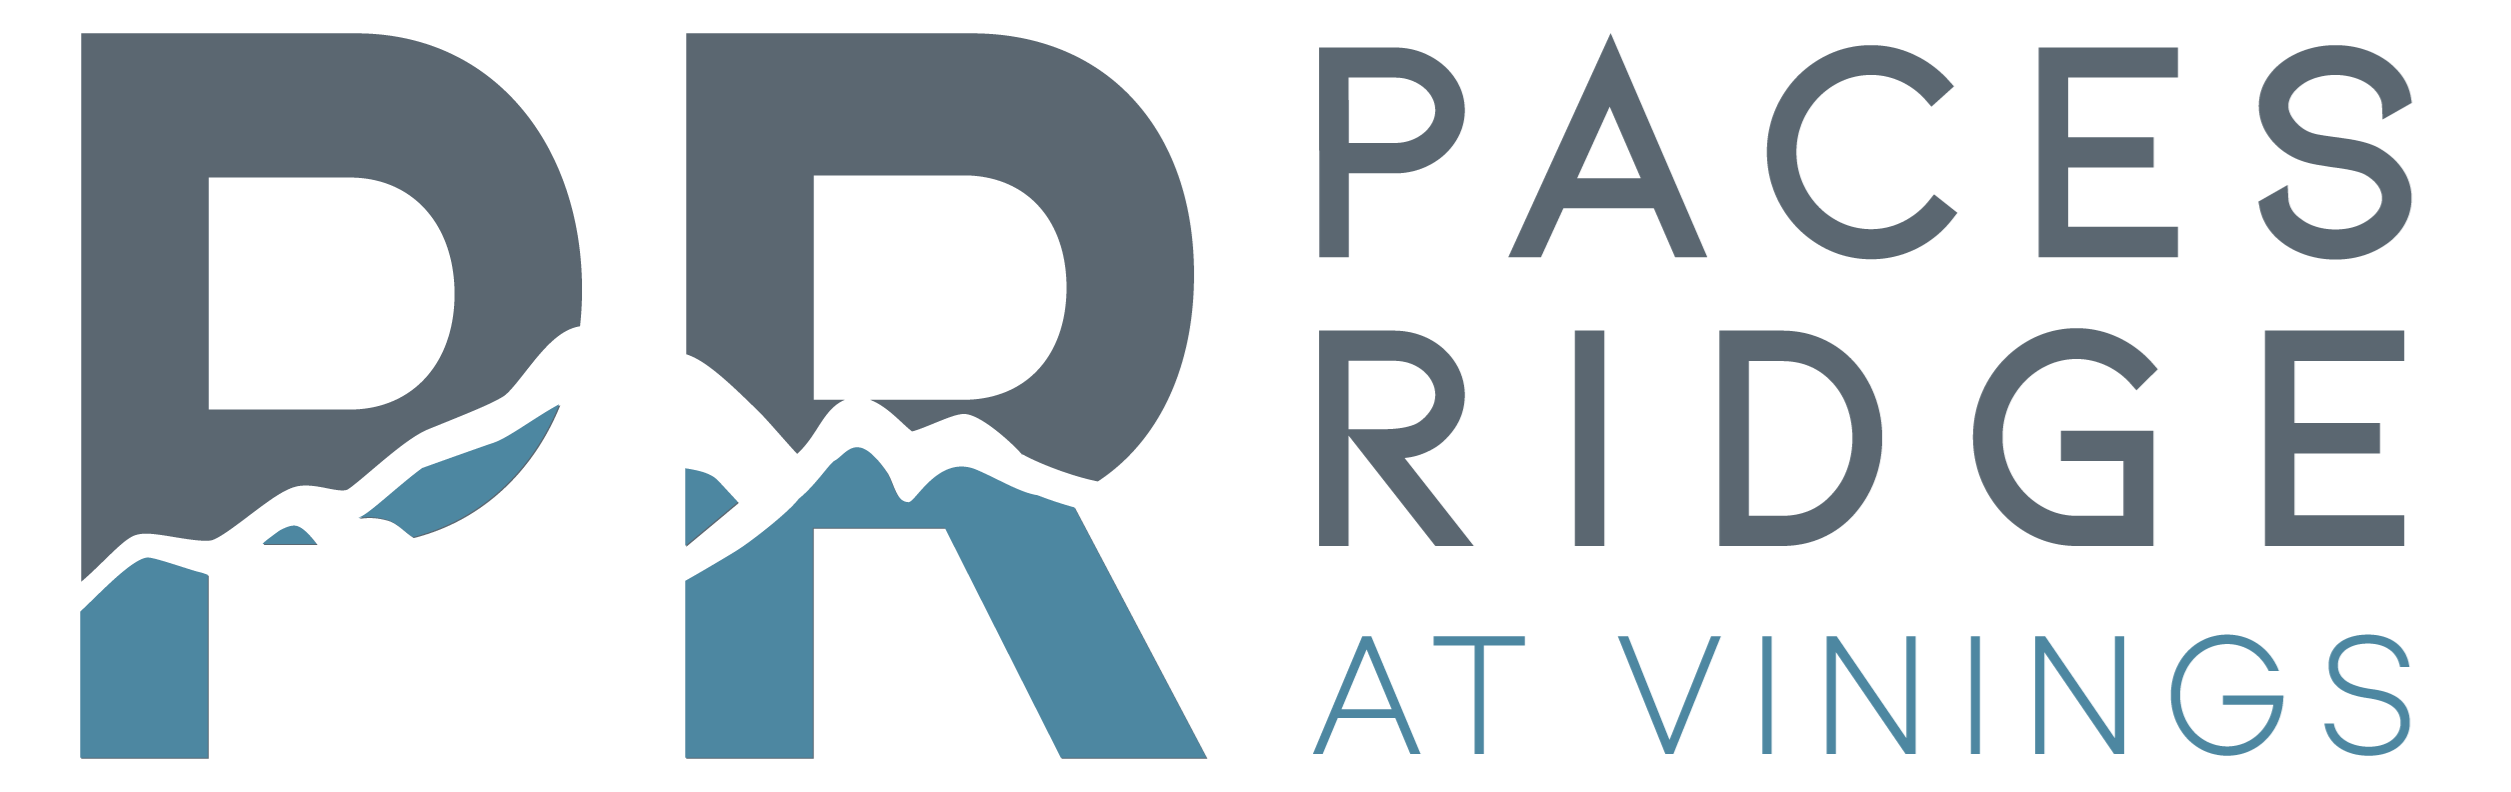 Paces Ridge logo